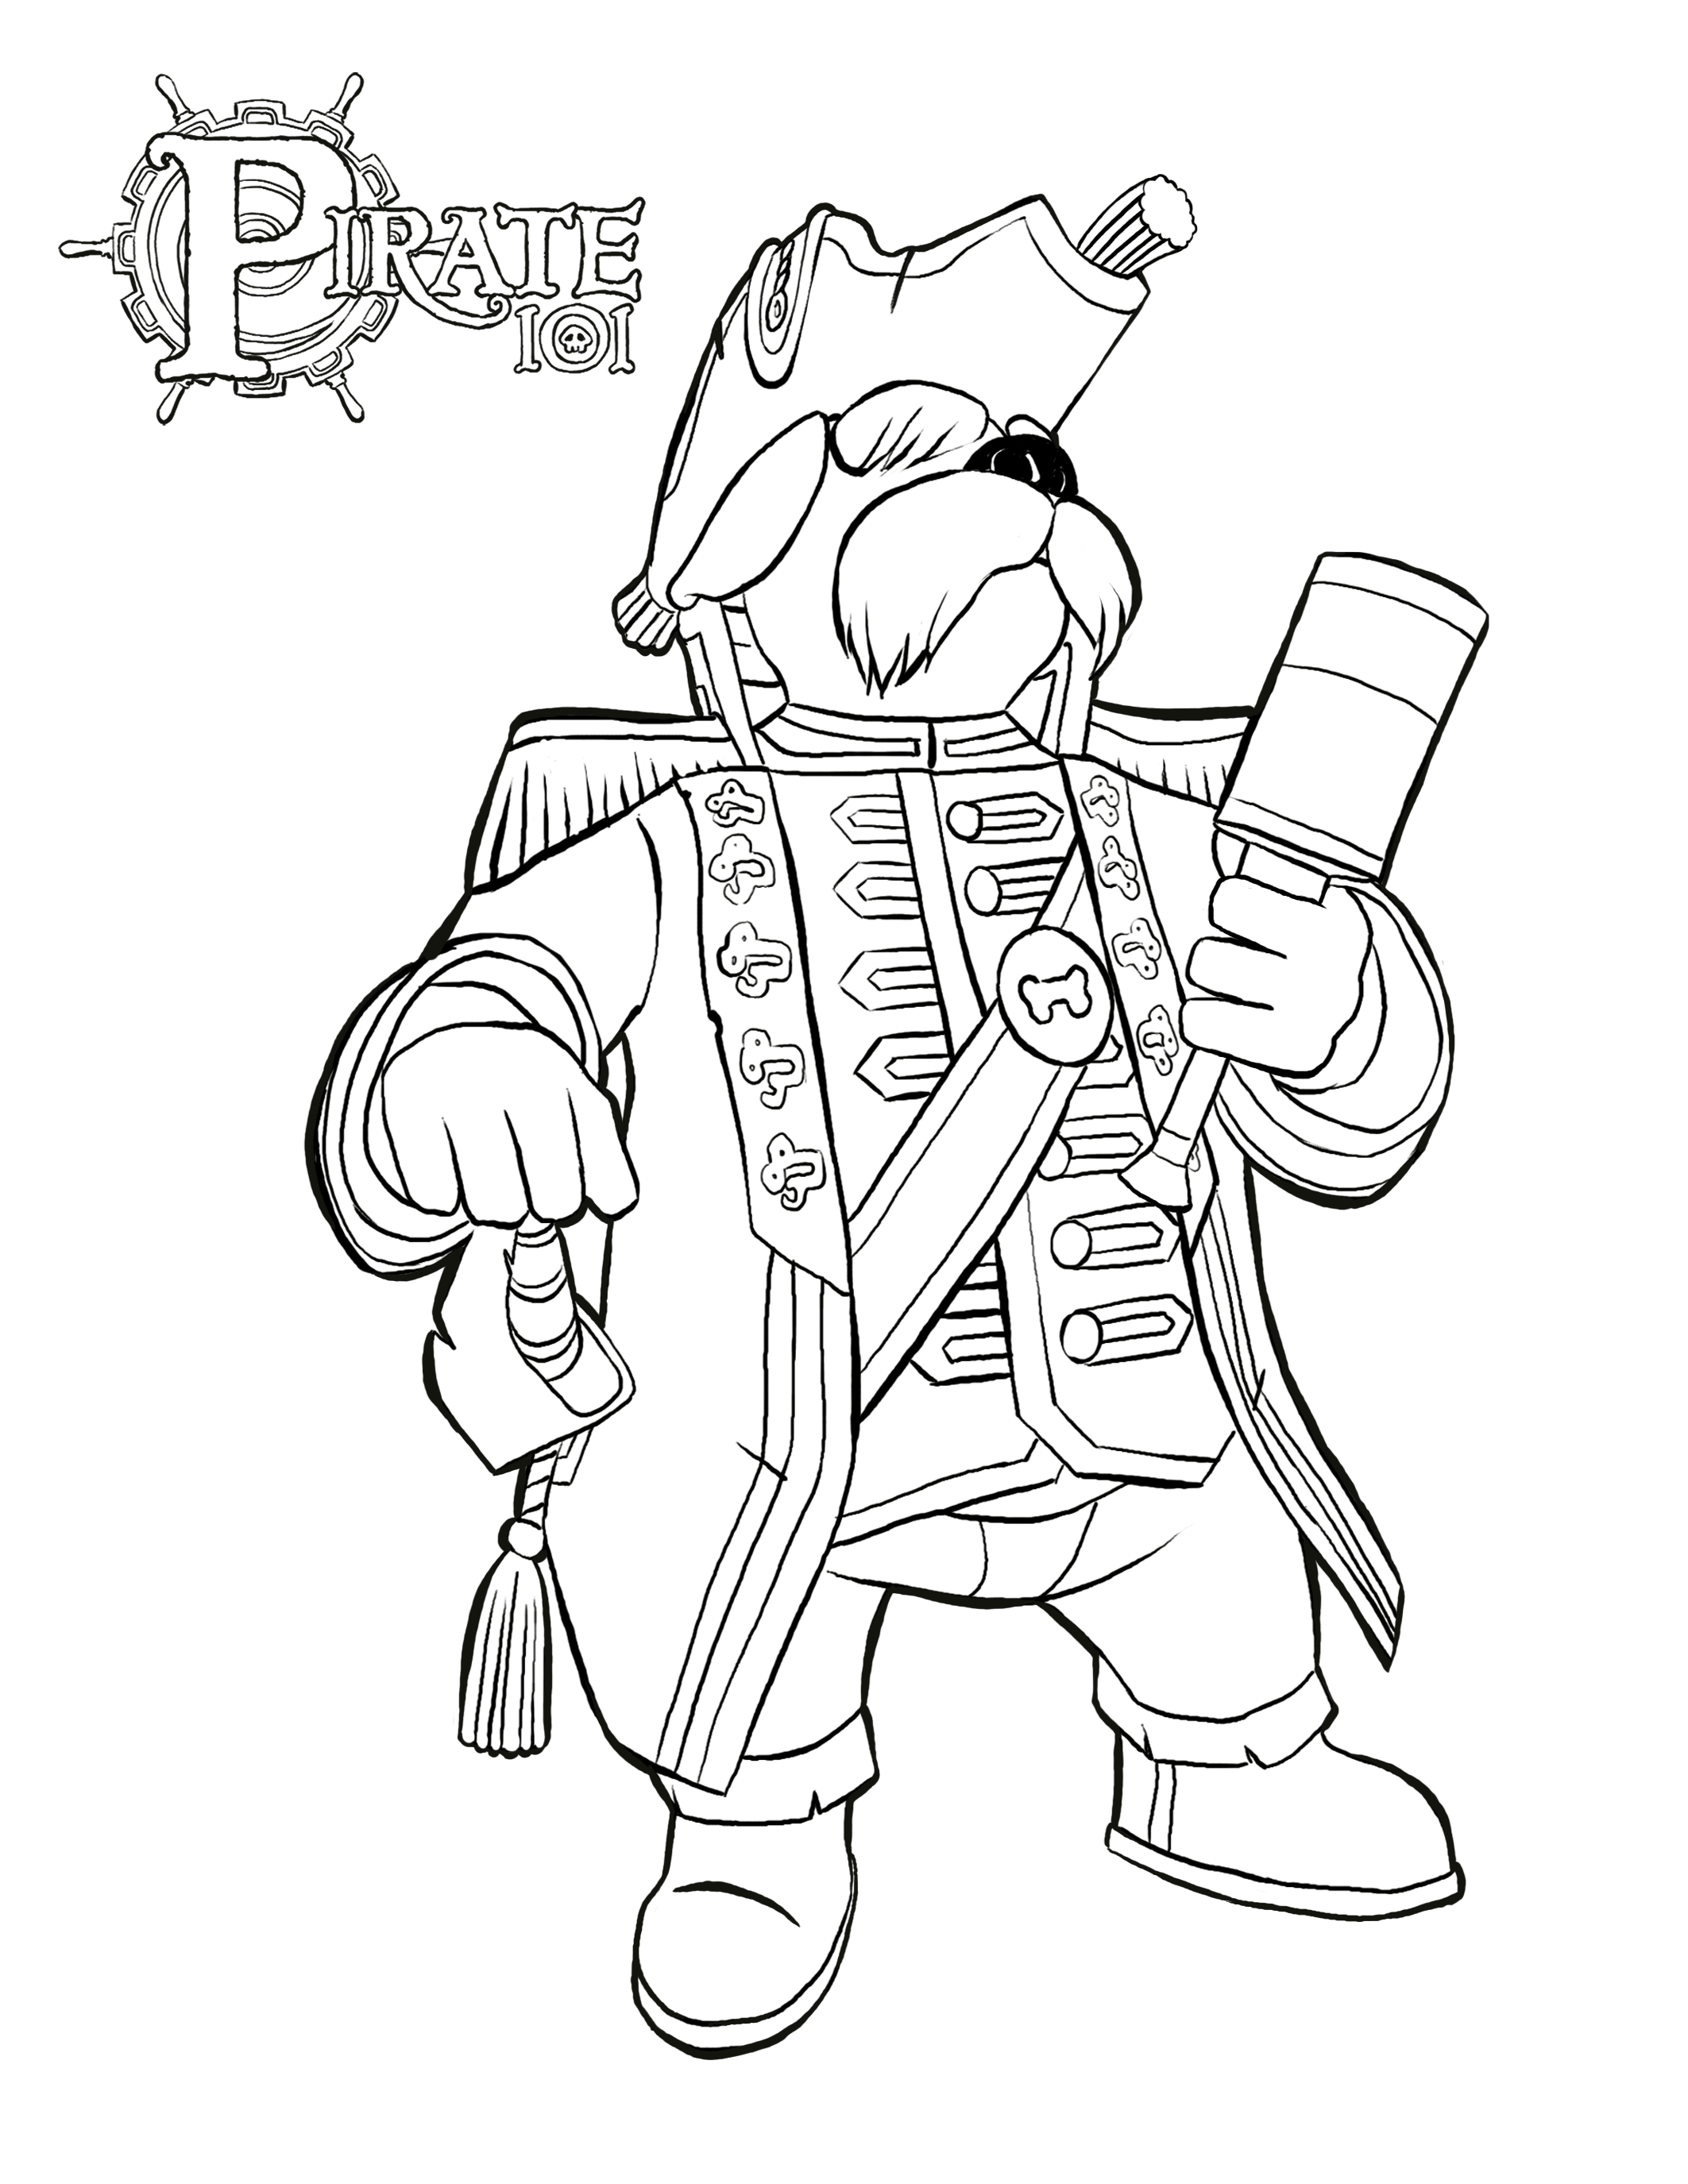 Pirate colouring pages to print - Download The Commodore Coloring Page